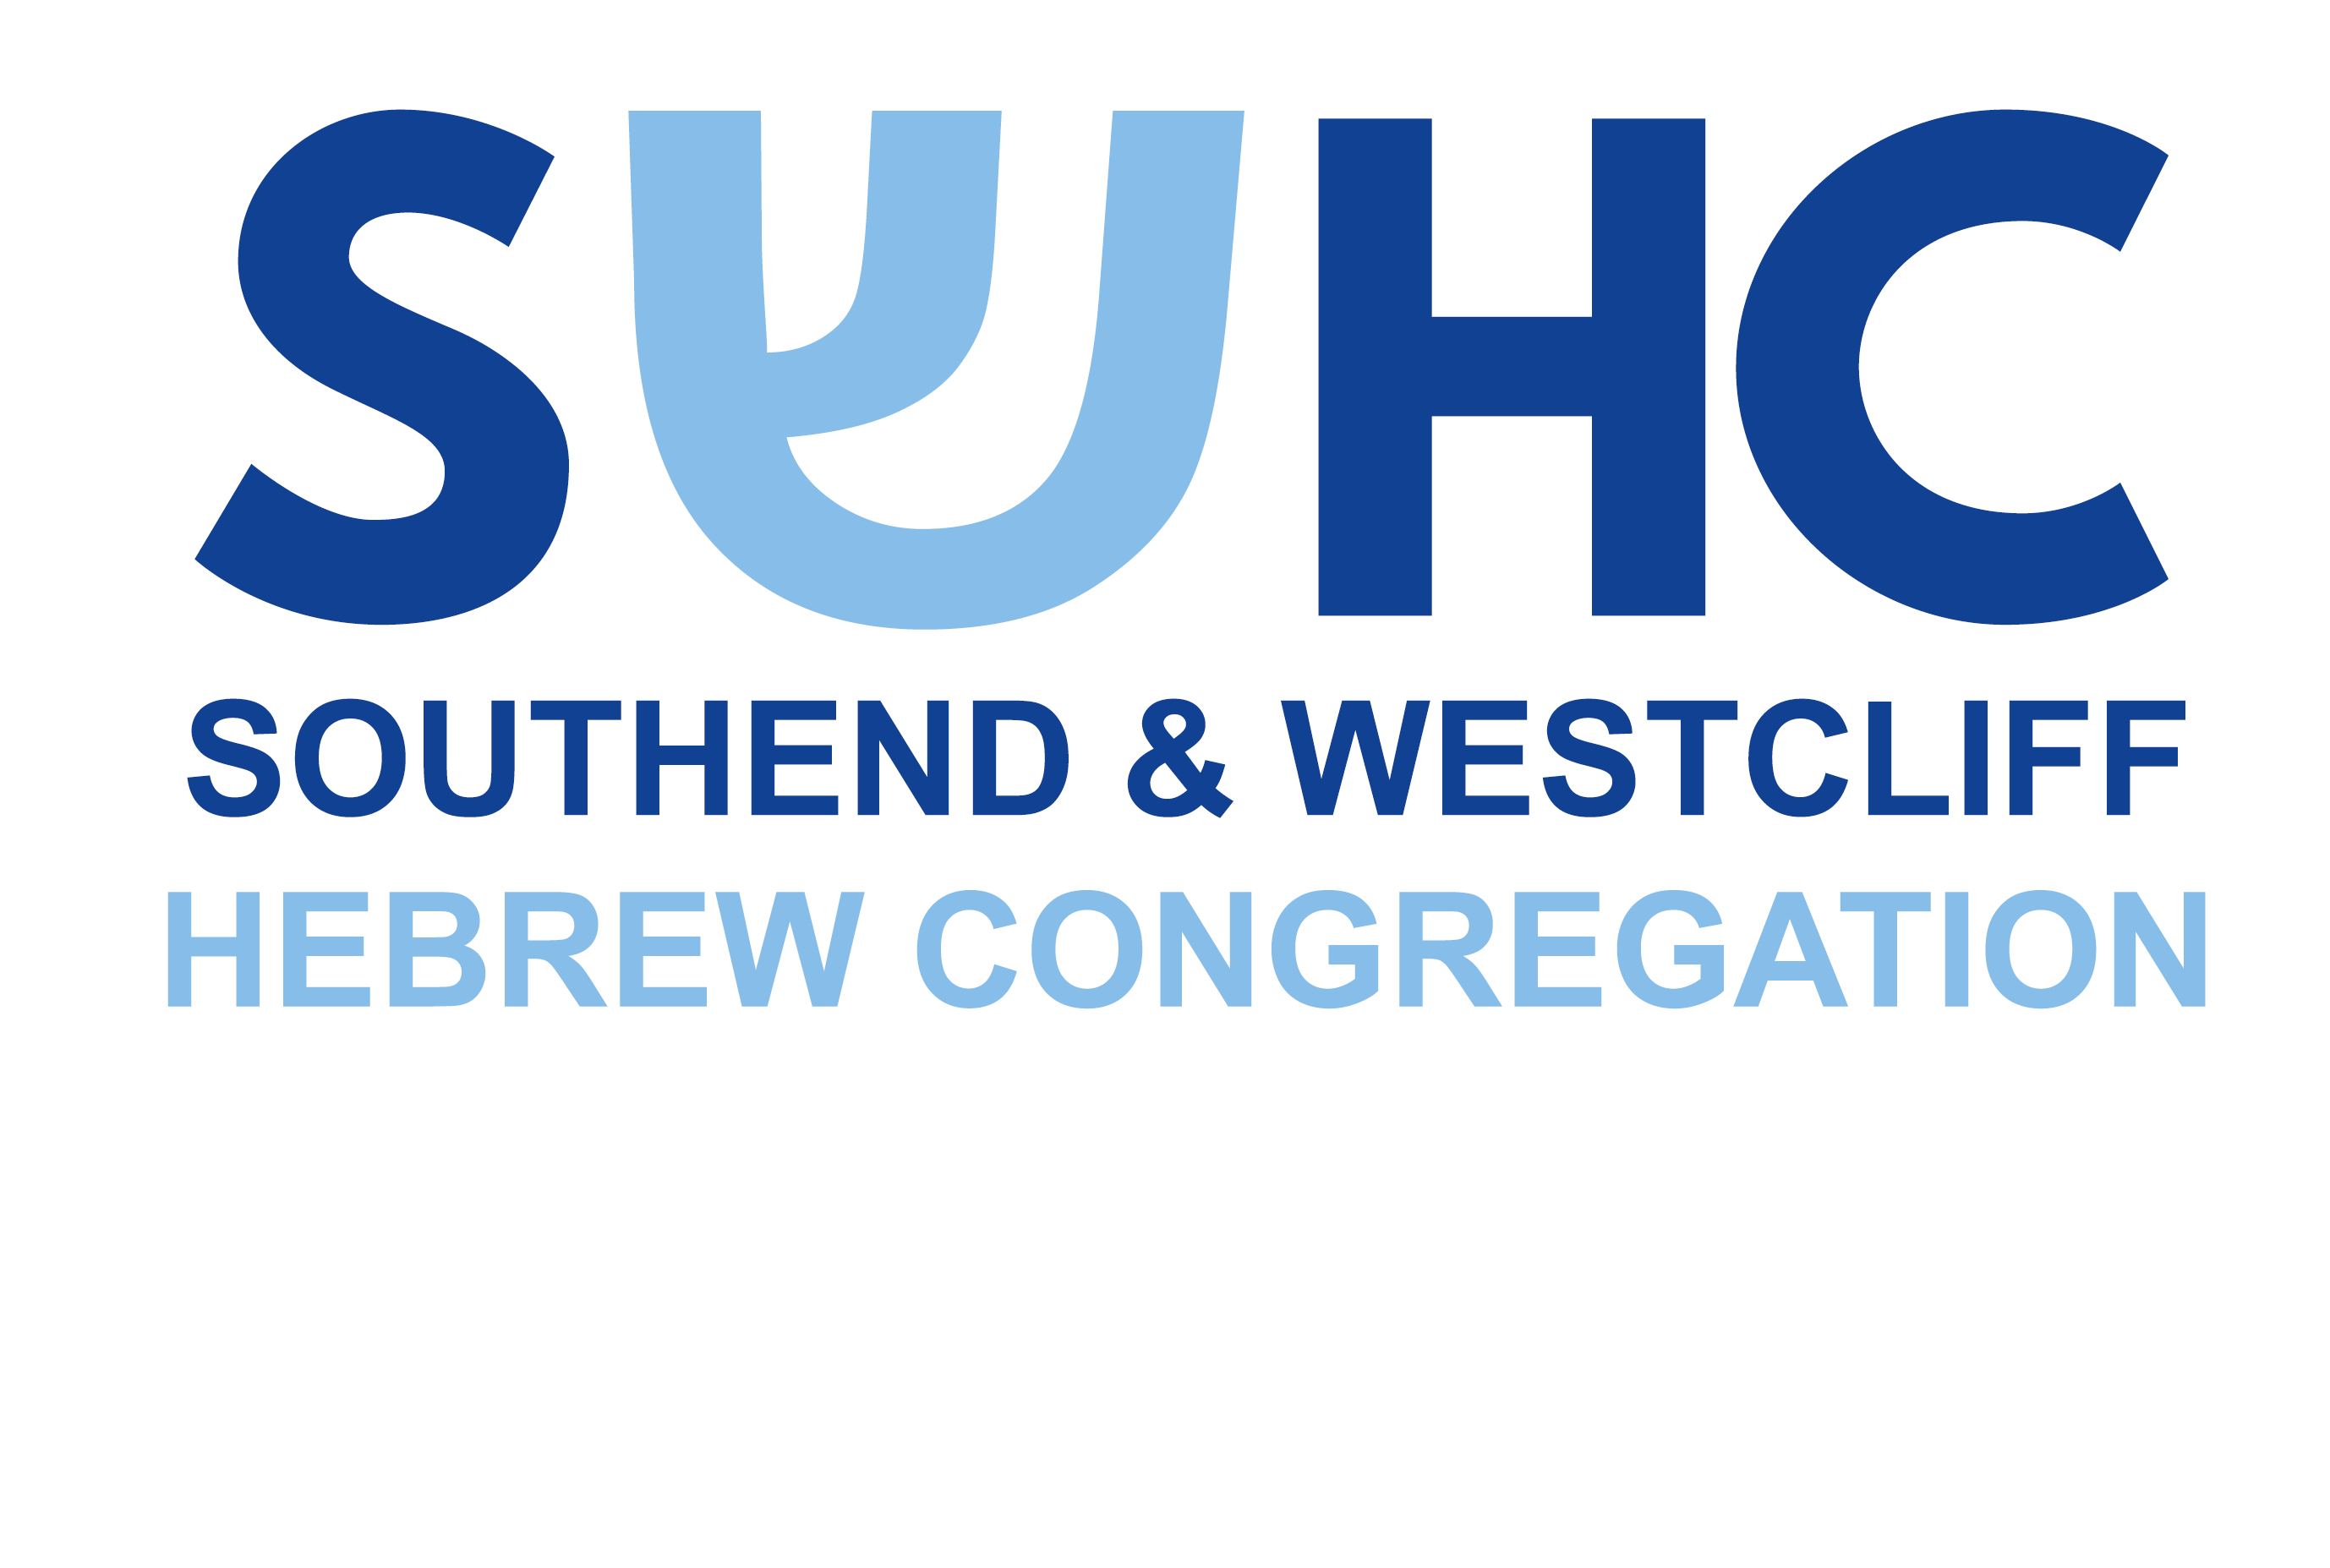 Southend & Westcliff Hebrew Congregation Logo